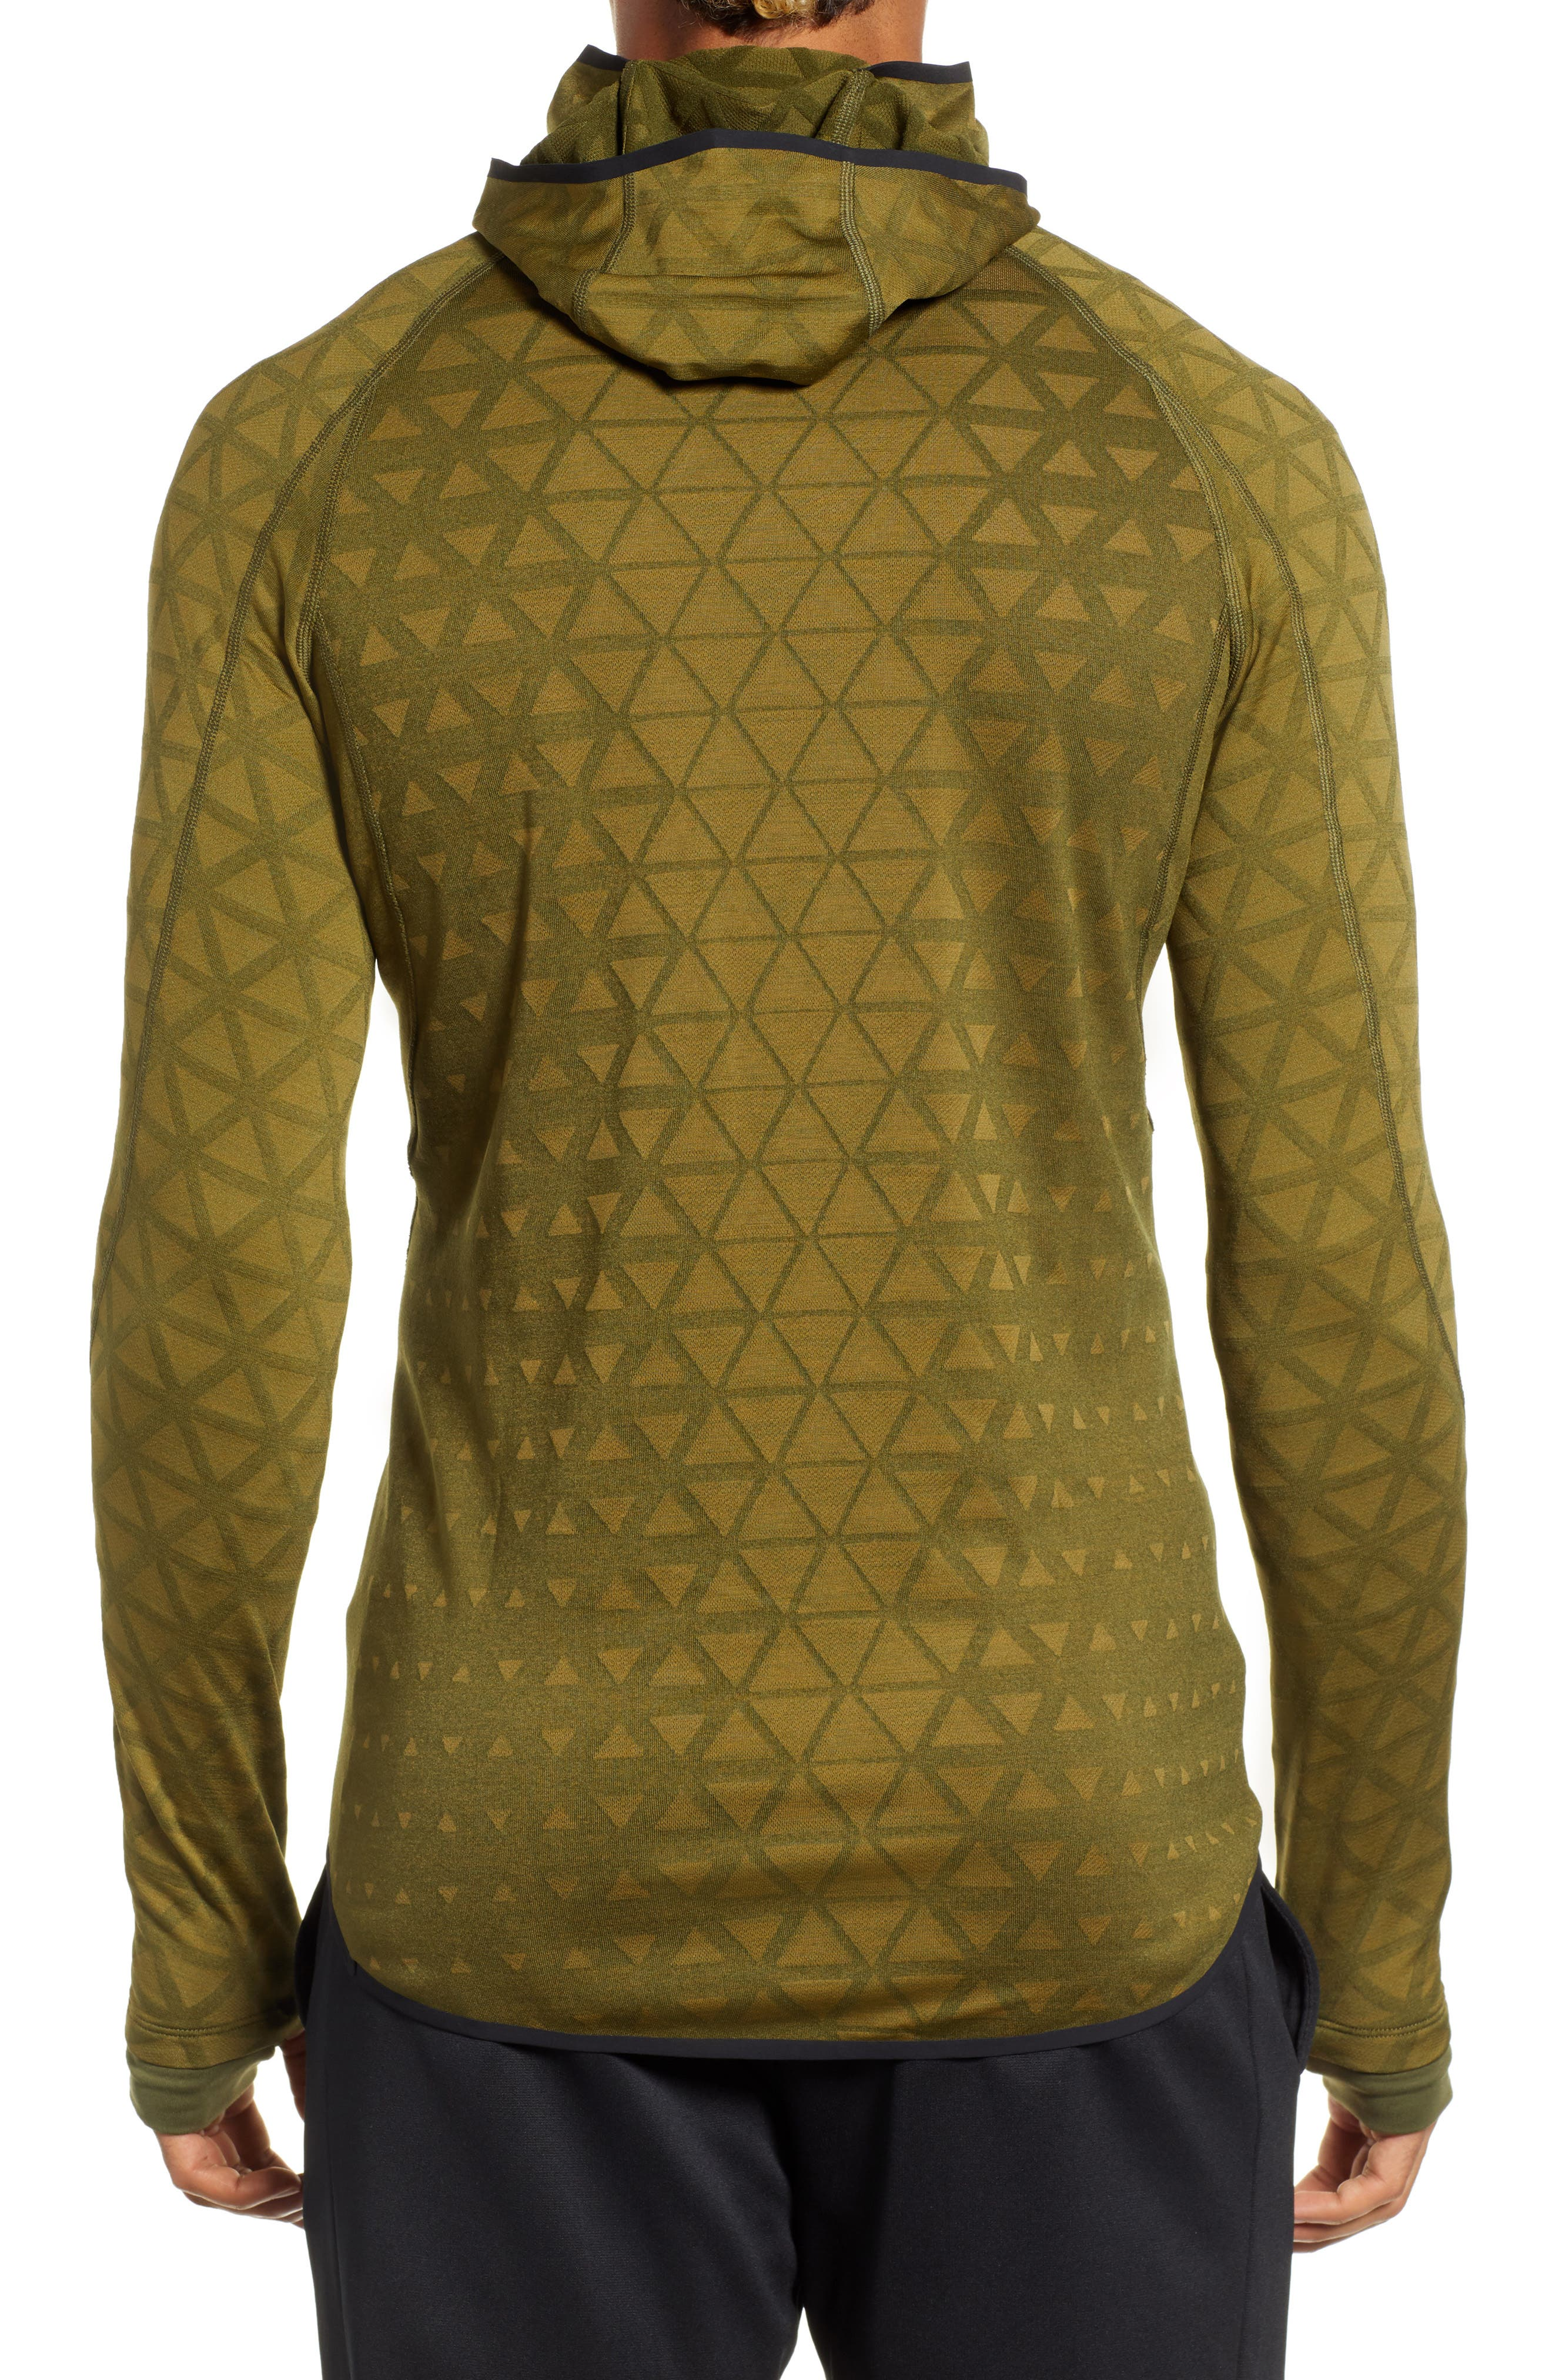 Therma Sphere Hooded Training Top,                             Alternate thumbnail 2, color,                             OLIVE/ OLIVE FLAK/ BLACK